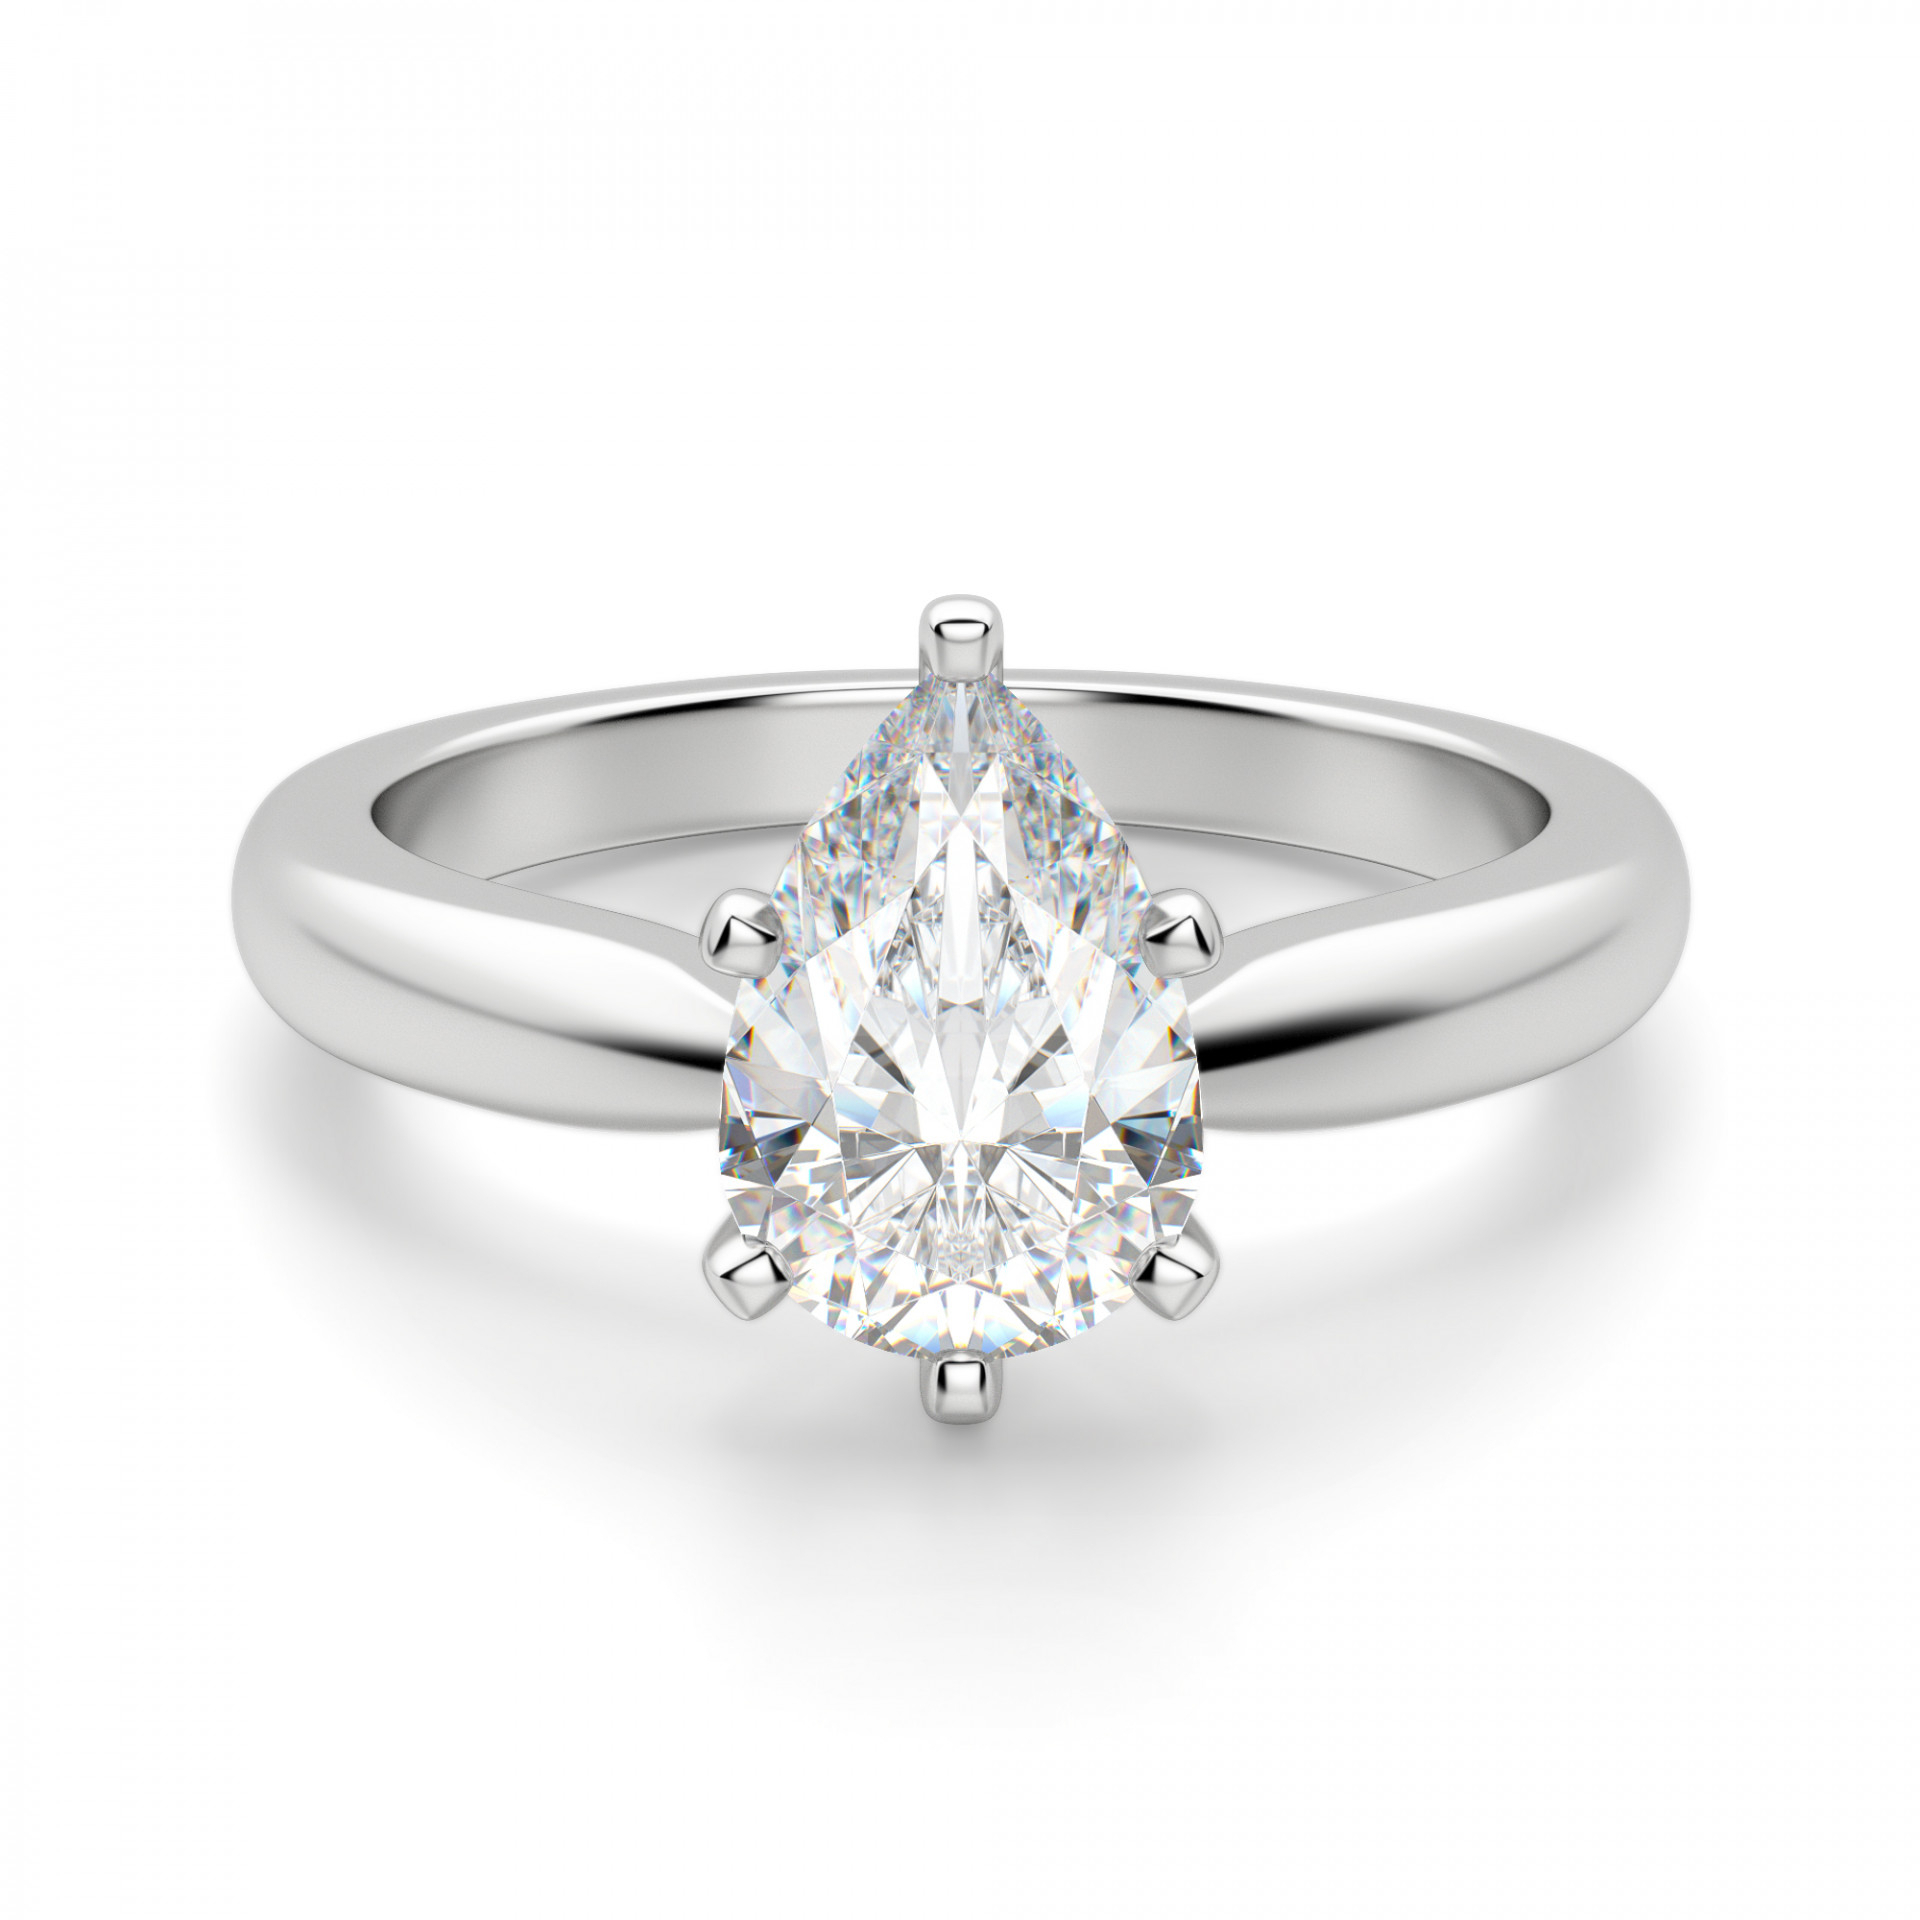 Tiffany Style Solitaire Pear Cut Engagement Ring For Tryst Pear Shaped Diamond Engagement Rings (View 12 of 25)